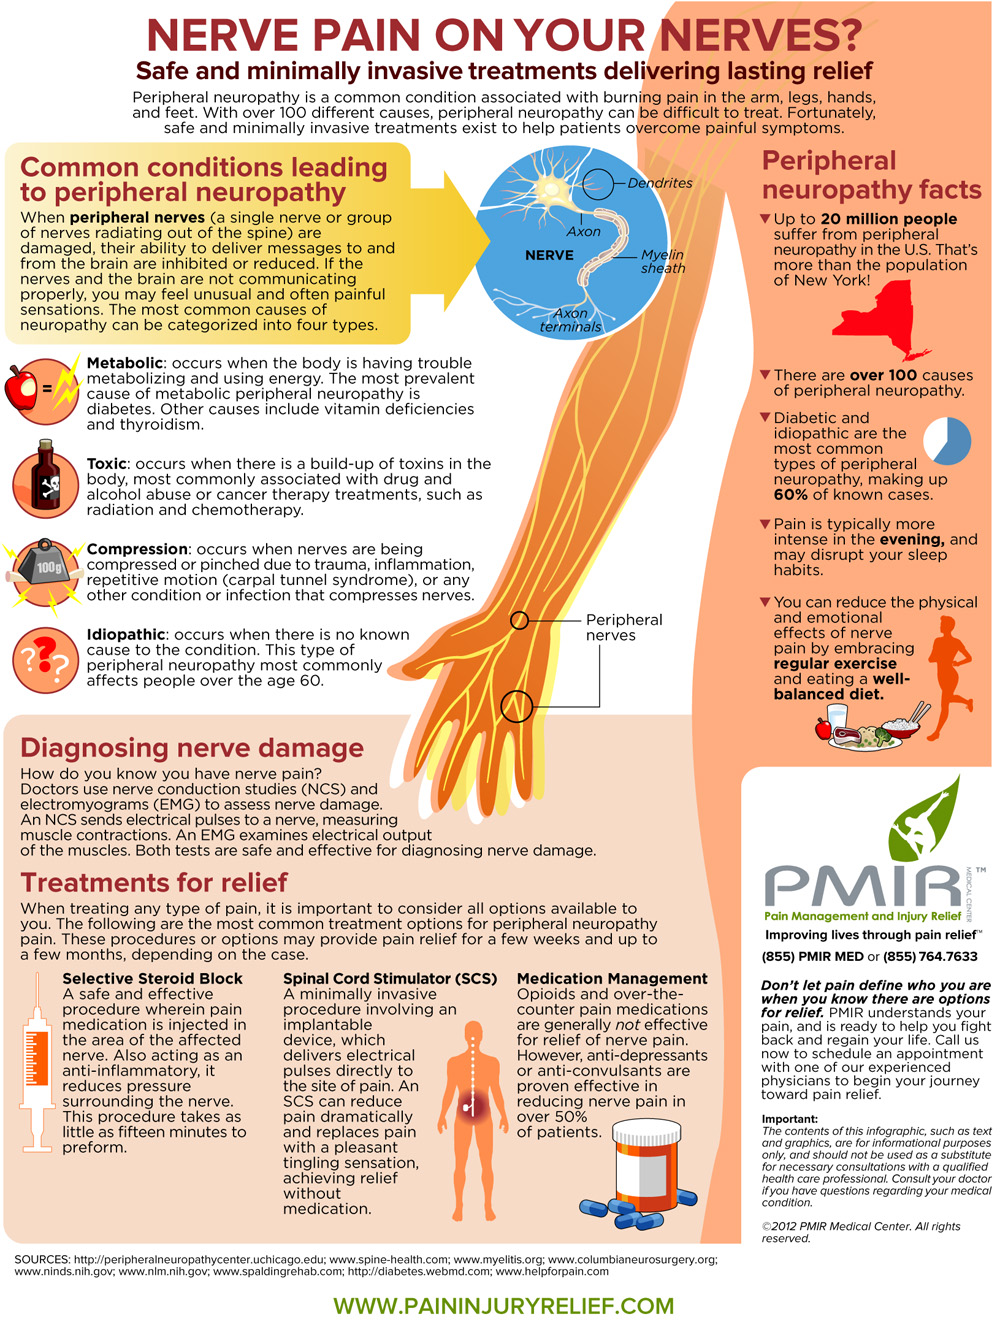 can a vitamin deficiency cause nerve pain